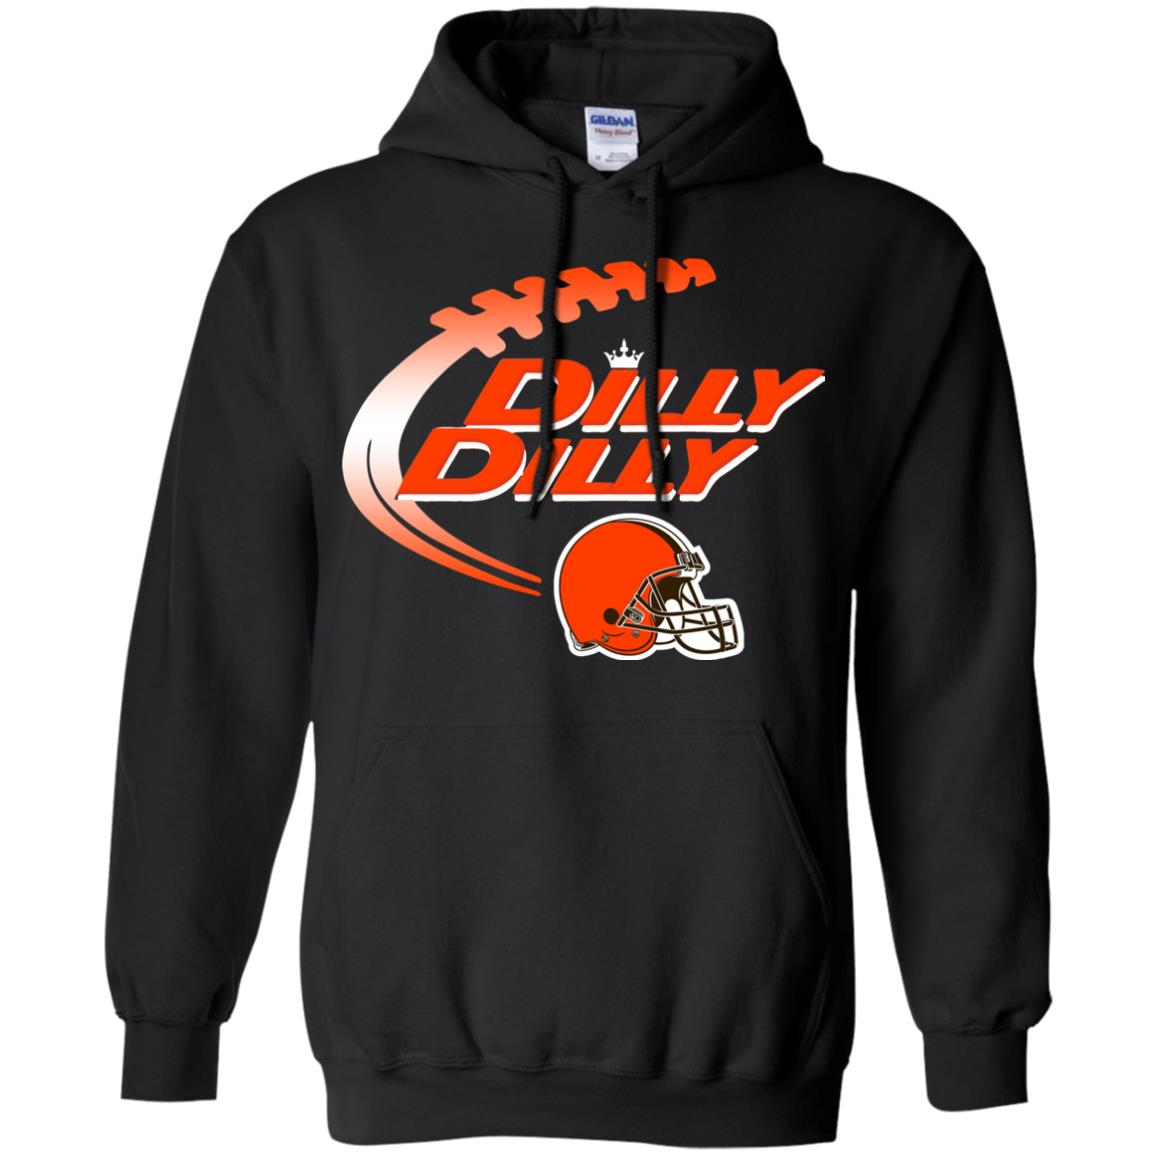 image 1594 - Dilly Dilly Cleveland Browns shirt, sweatshirt